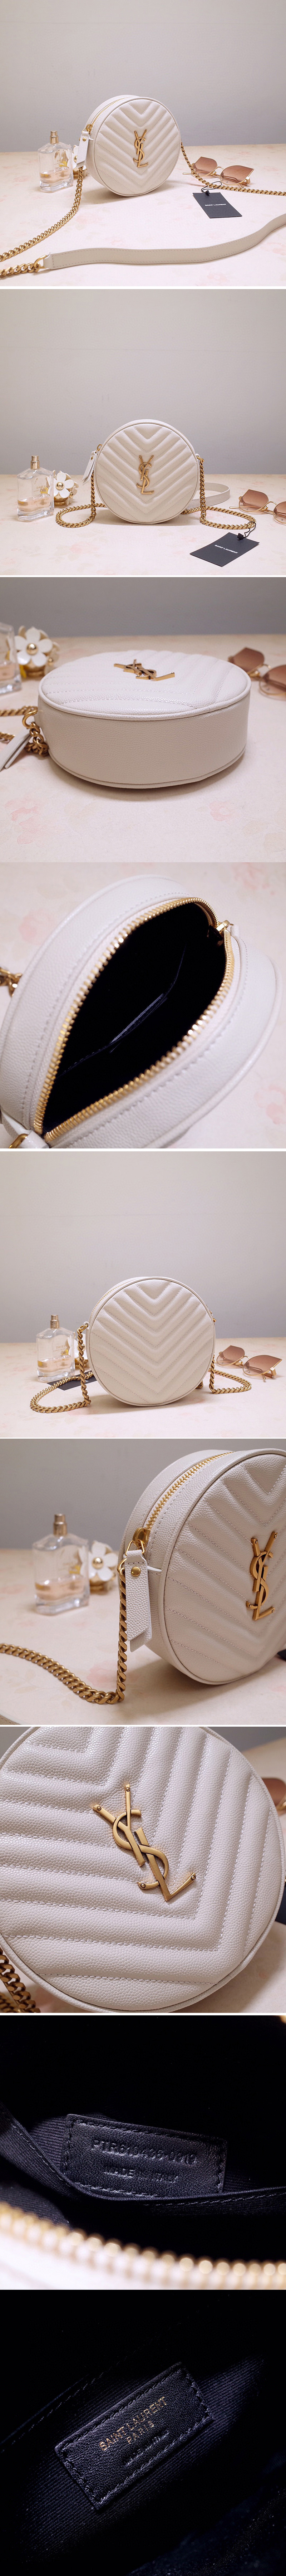 Replica Saint Laurent 6104361 YSL Vinyle Round Camera Bags in White Chevron-Quilted Grain de Poudre Embossed Leather